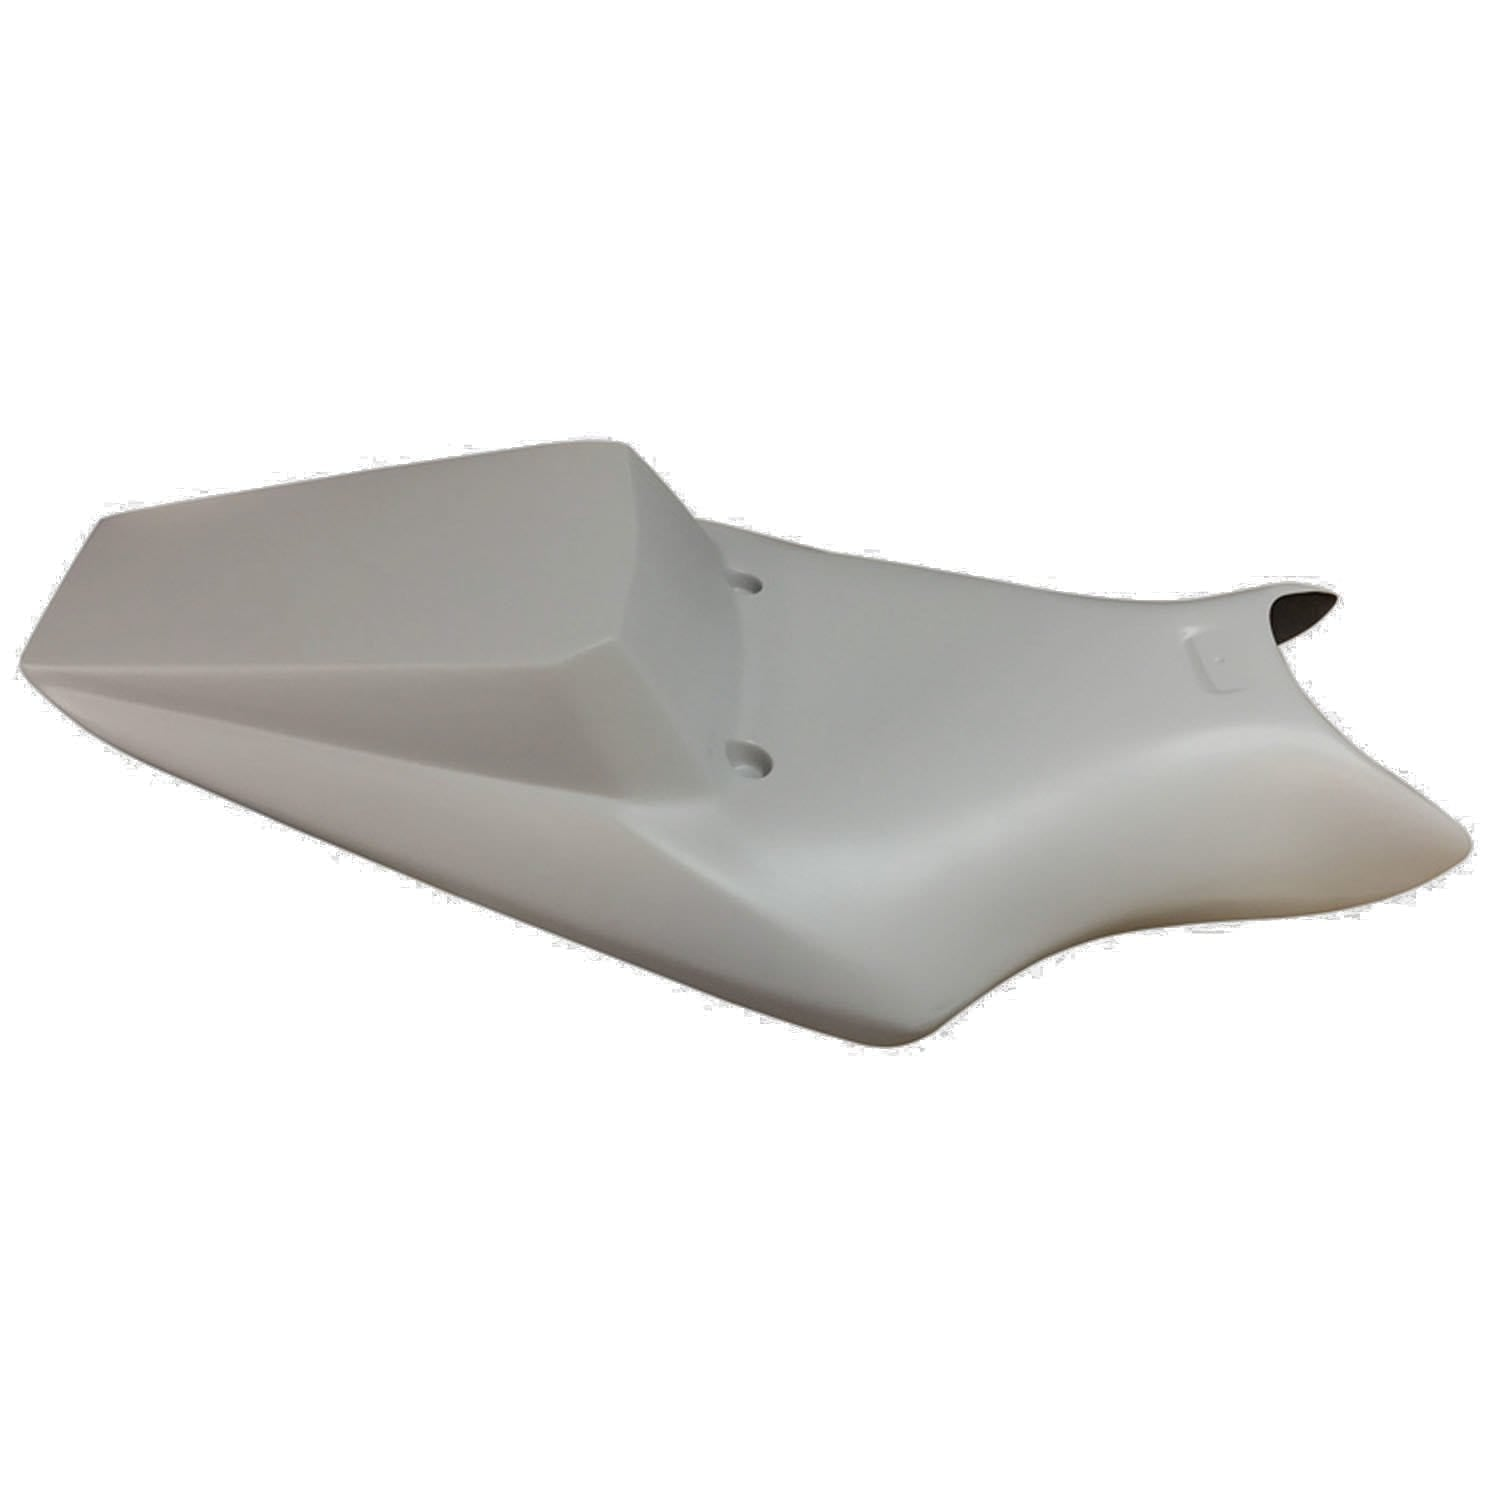 03-05 Yam R6 SuperBike Tail - Pro Series + 71-0445SP - Woodcraft Technologies - Motorcycle Parts